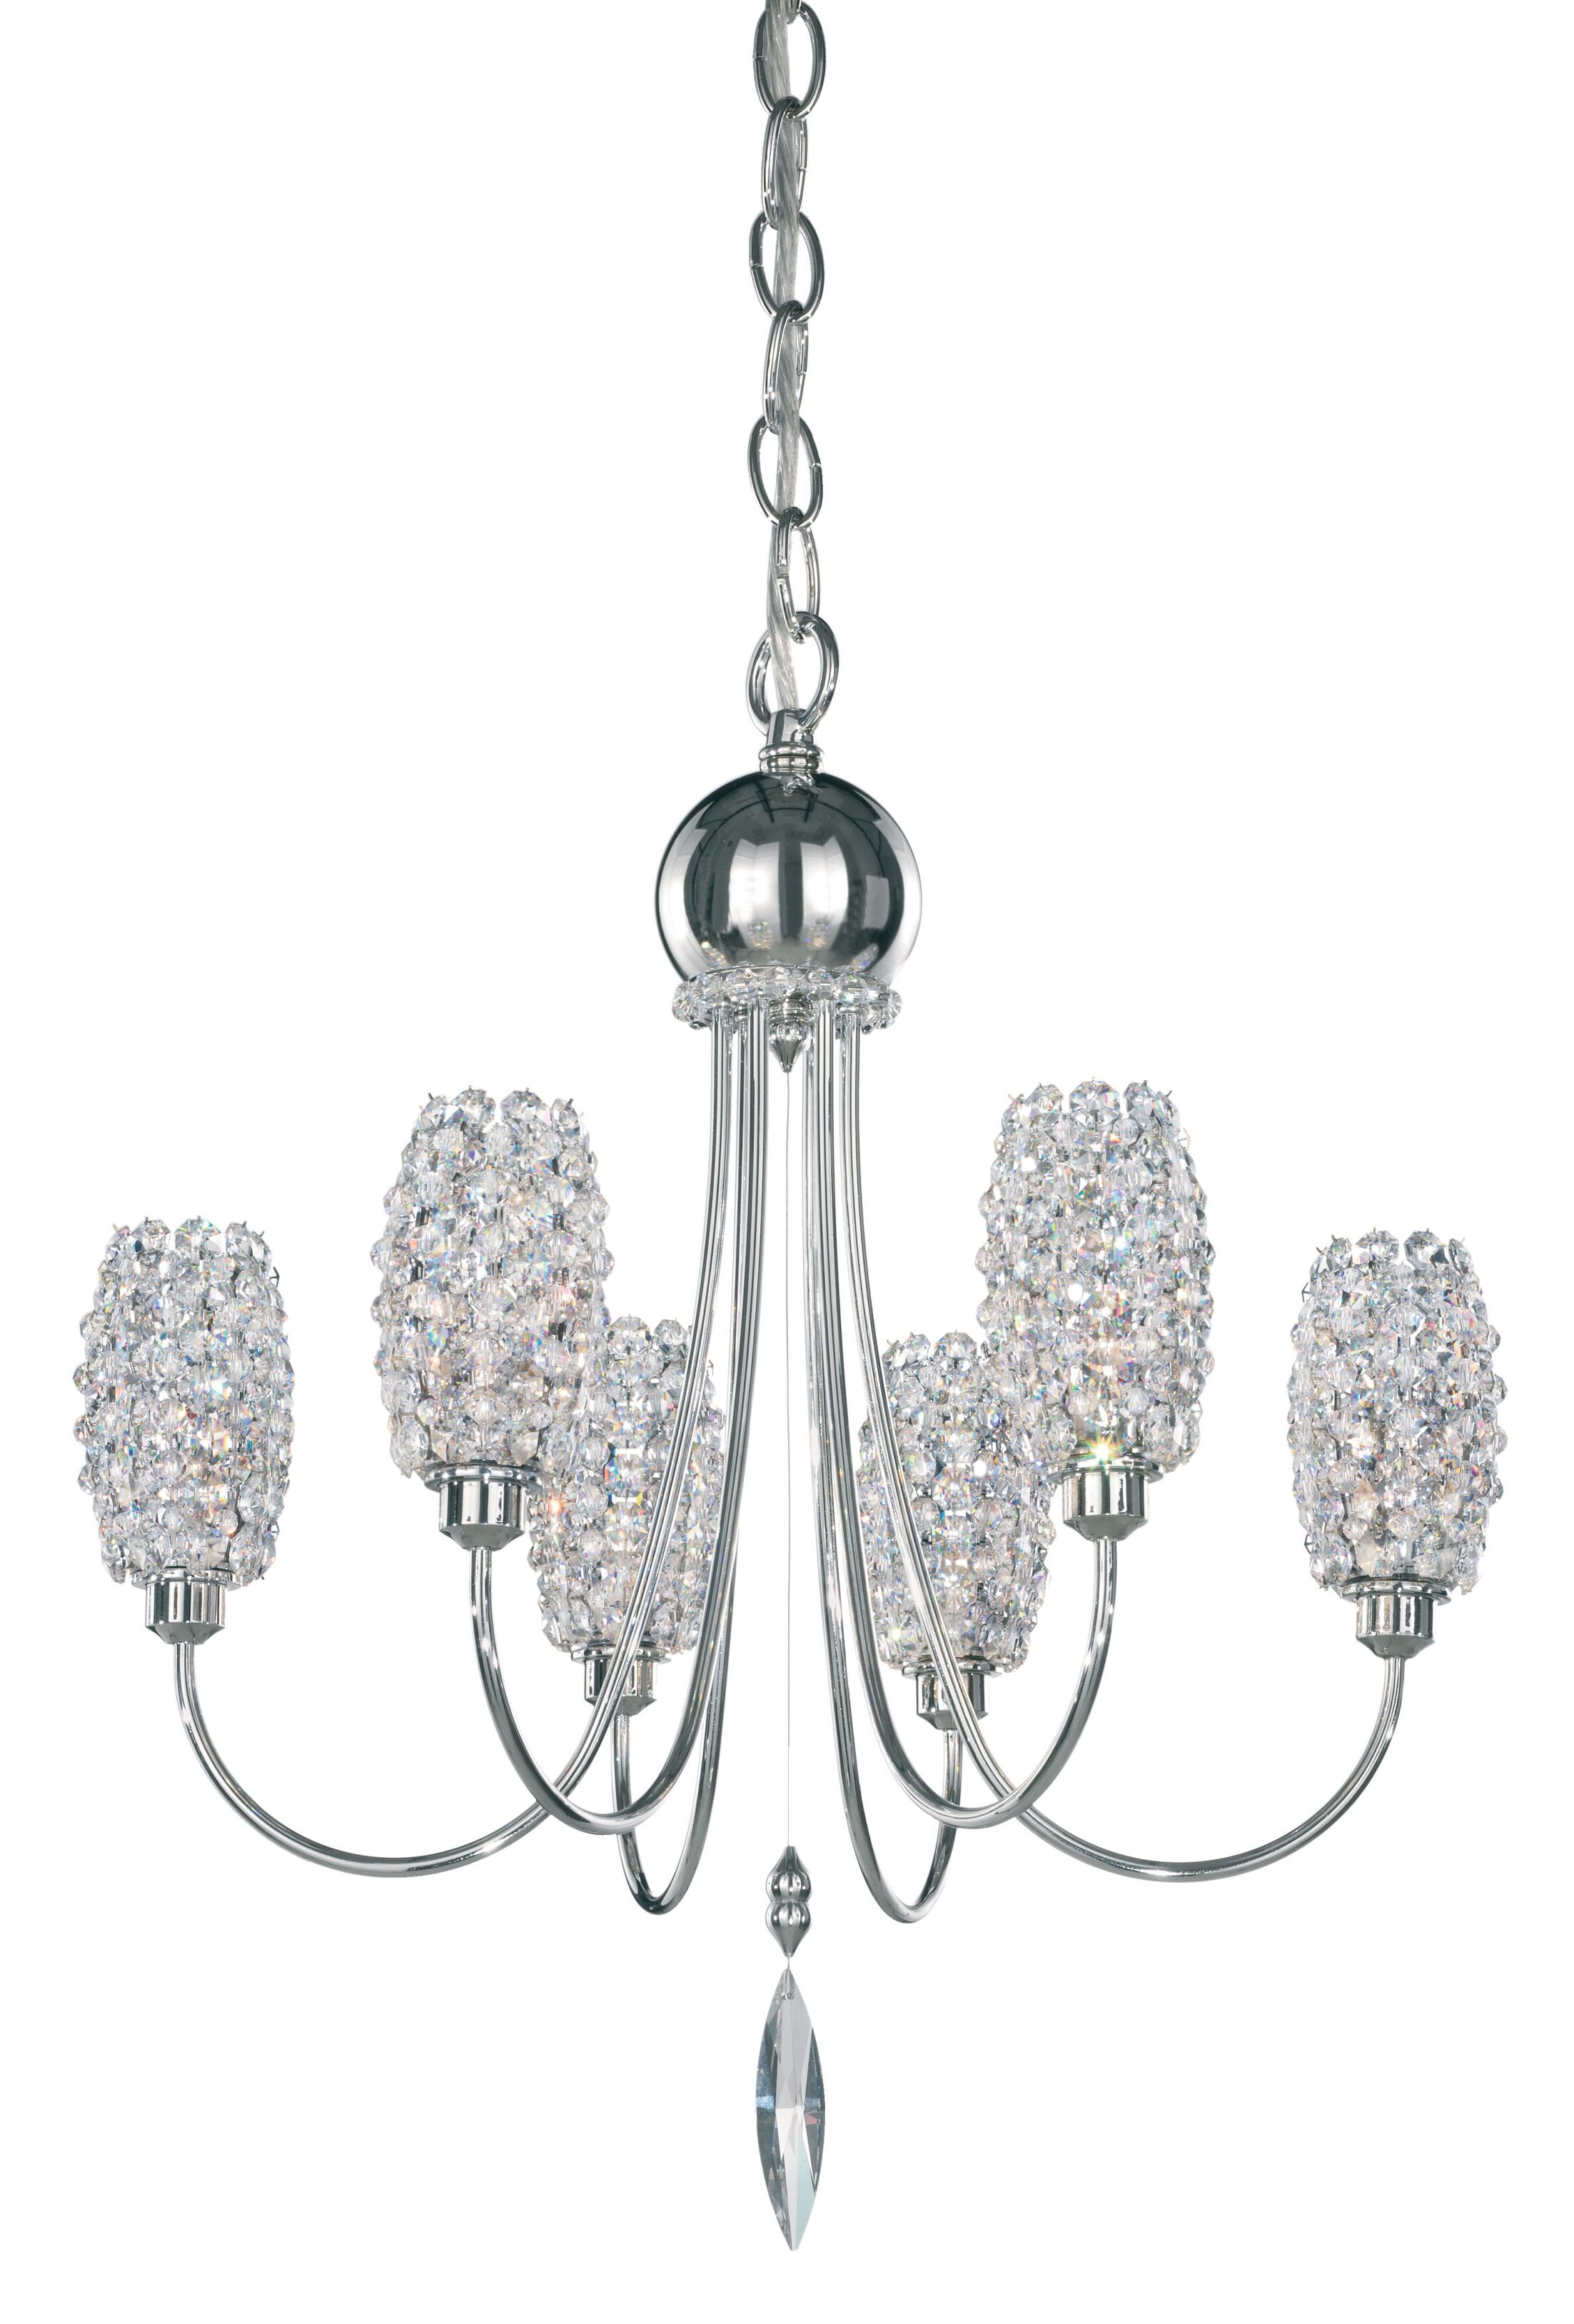 Dionyx 6-Light Shaded Chandelier Crystal Grade: Swarovski Elements Ocelot